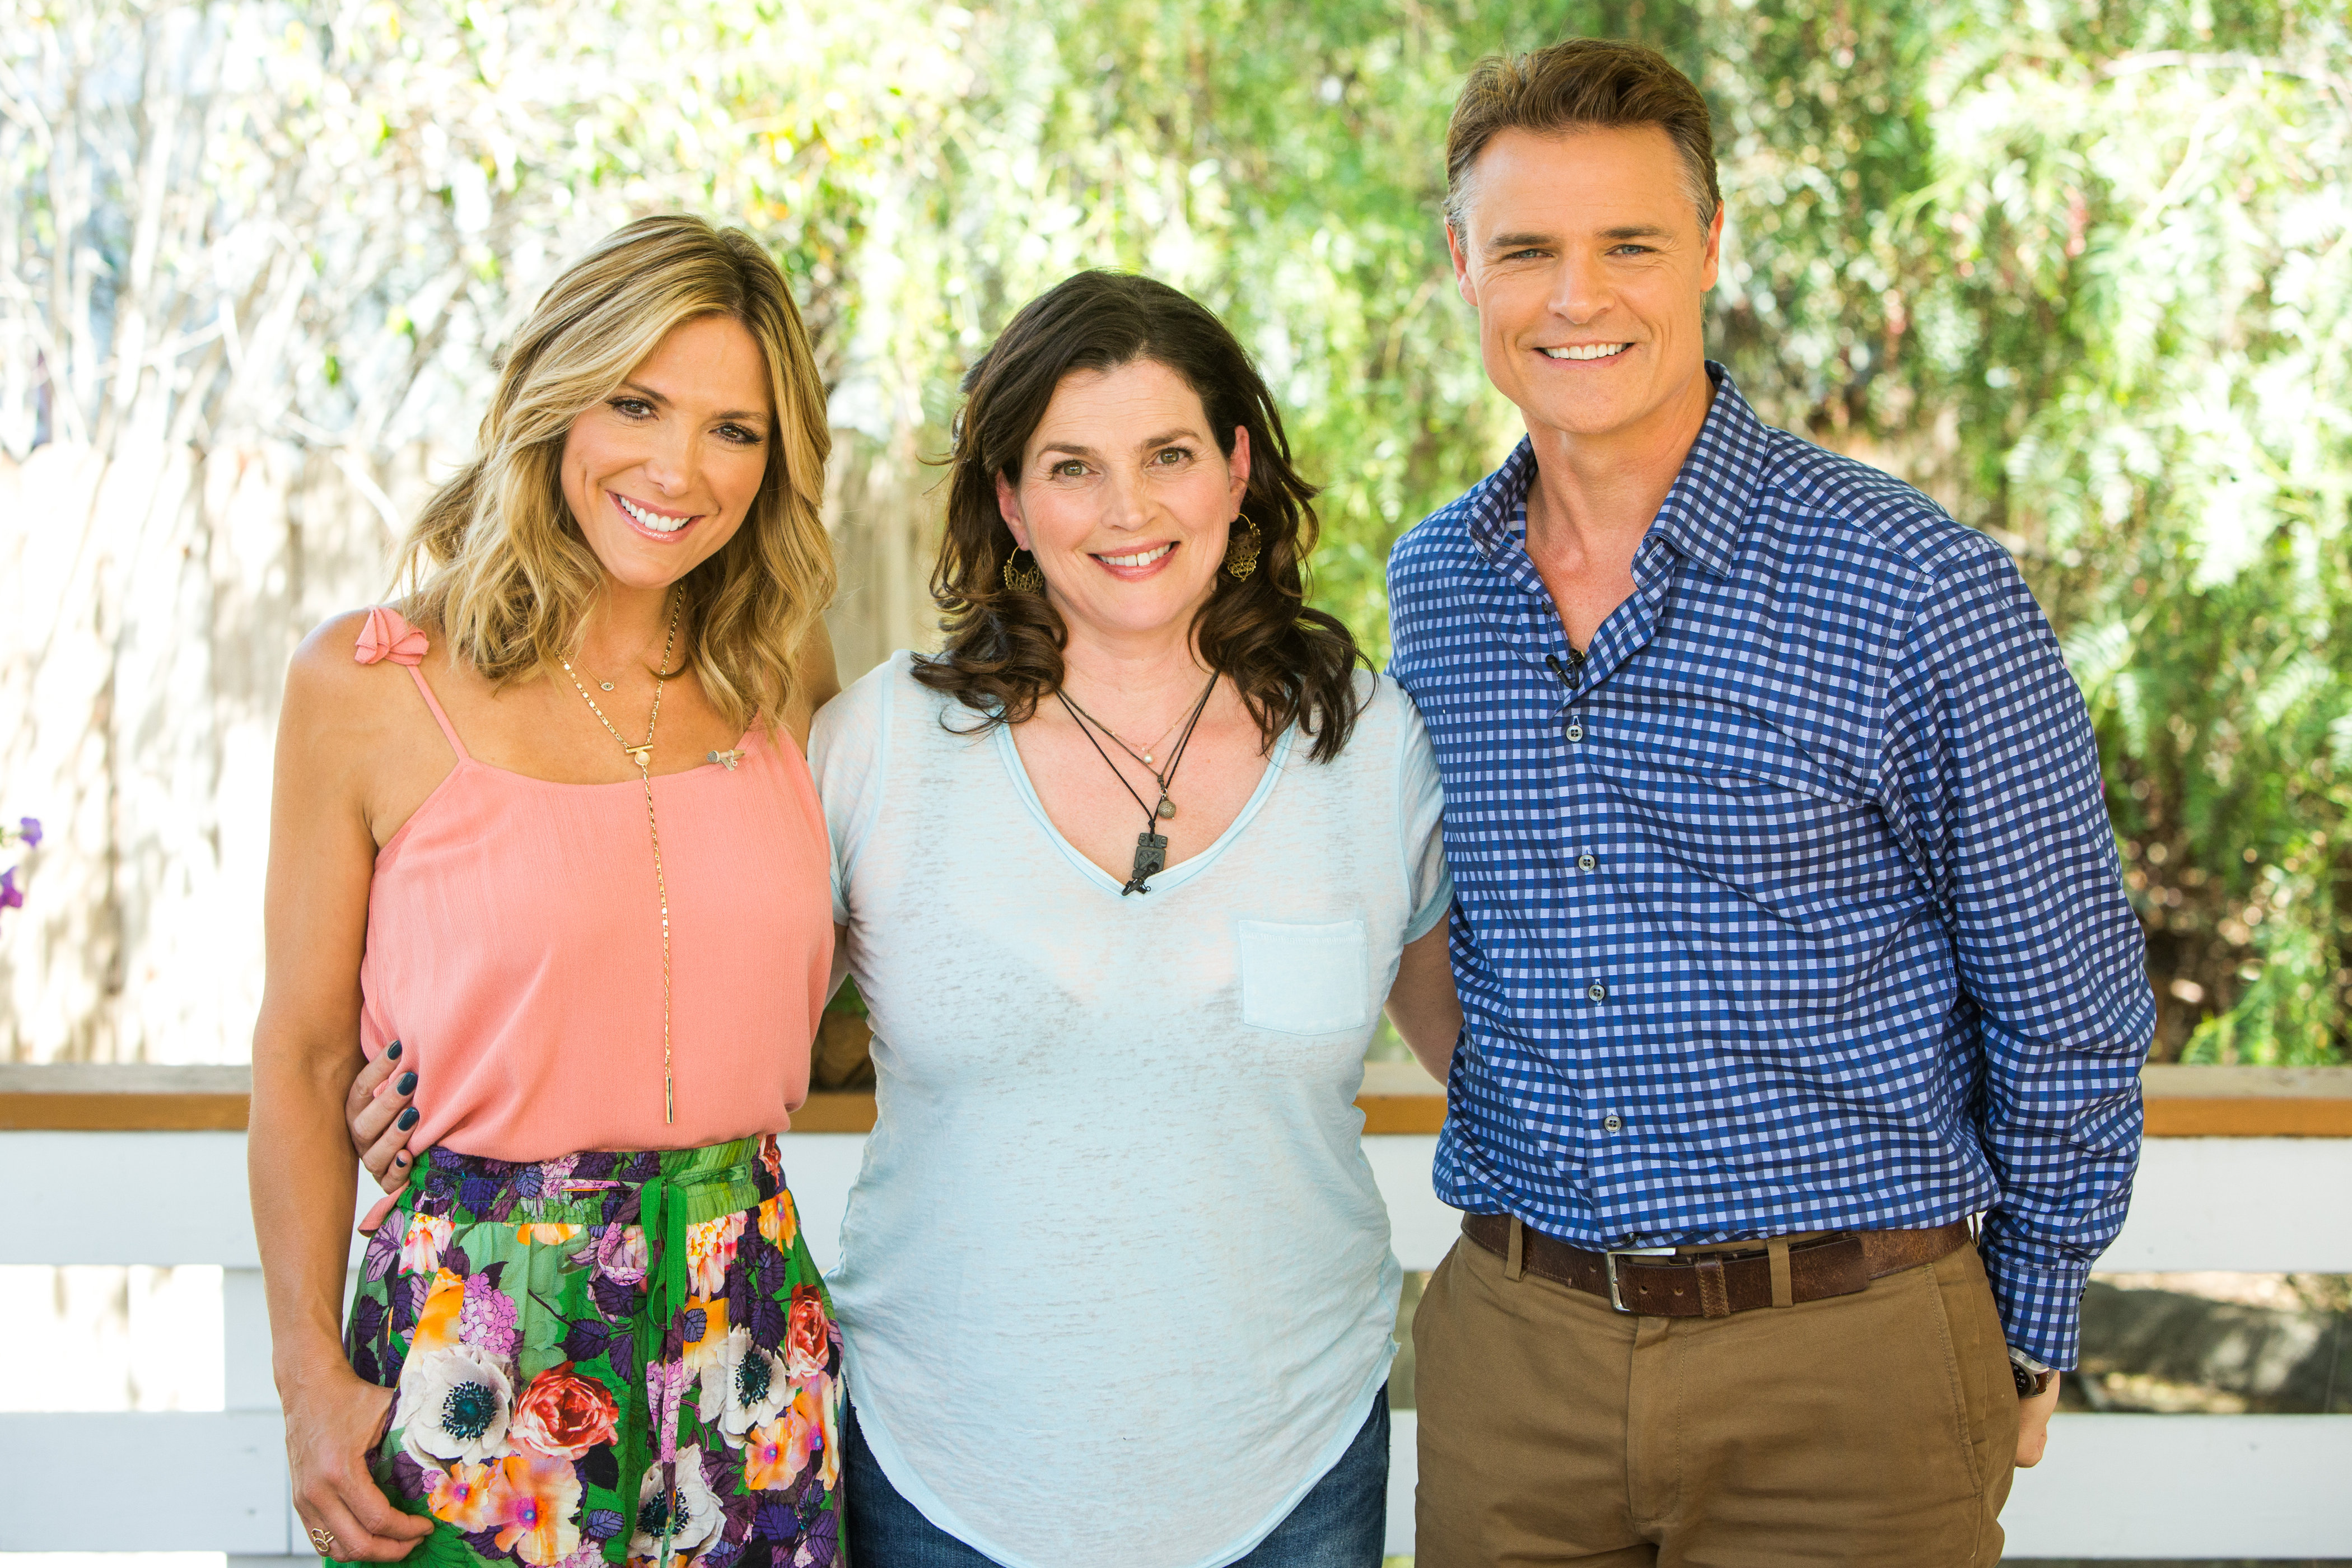 Hallmark Channel Show Schedule Hallmark Channel Home And Family - Home family season 5